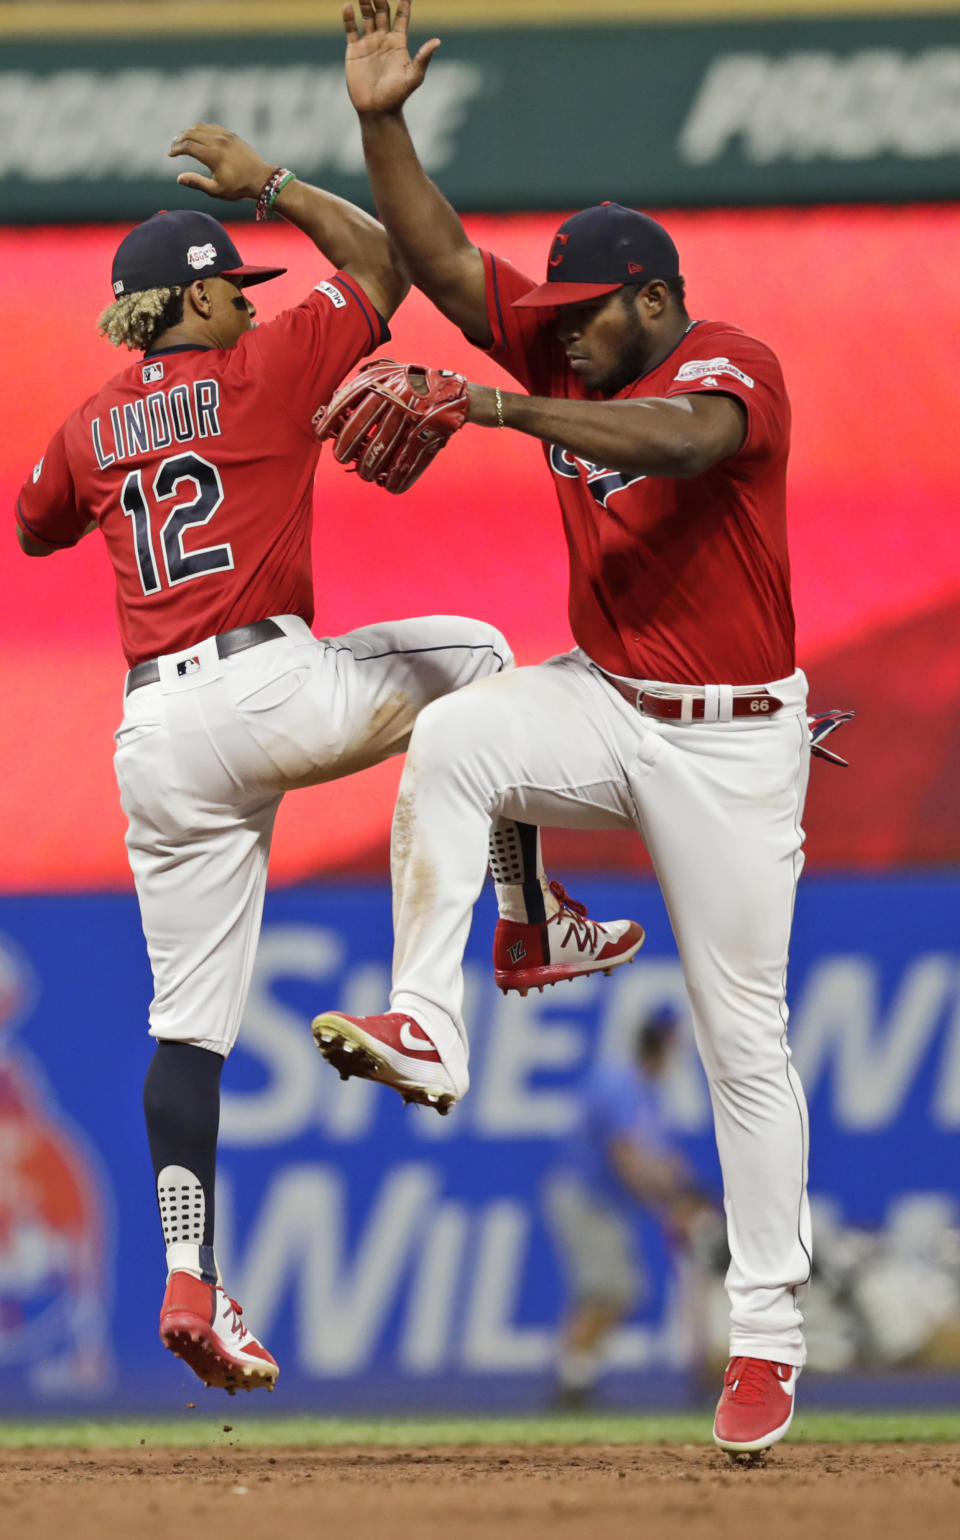 Cleveland Indians' Francisco Lindor, left, and Yasiel Puig celebrate after the Indians defeated the Philadelphia Phillies 5-2 in a baseball game Friday, Sept. 20, 2019, in Cleveland. (AP Photo/Tony Dejak)